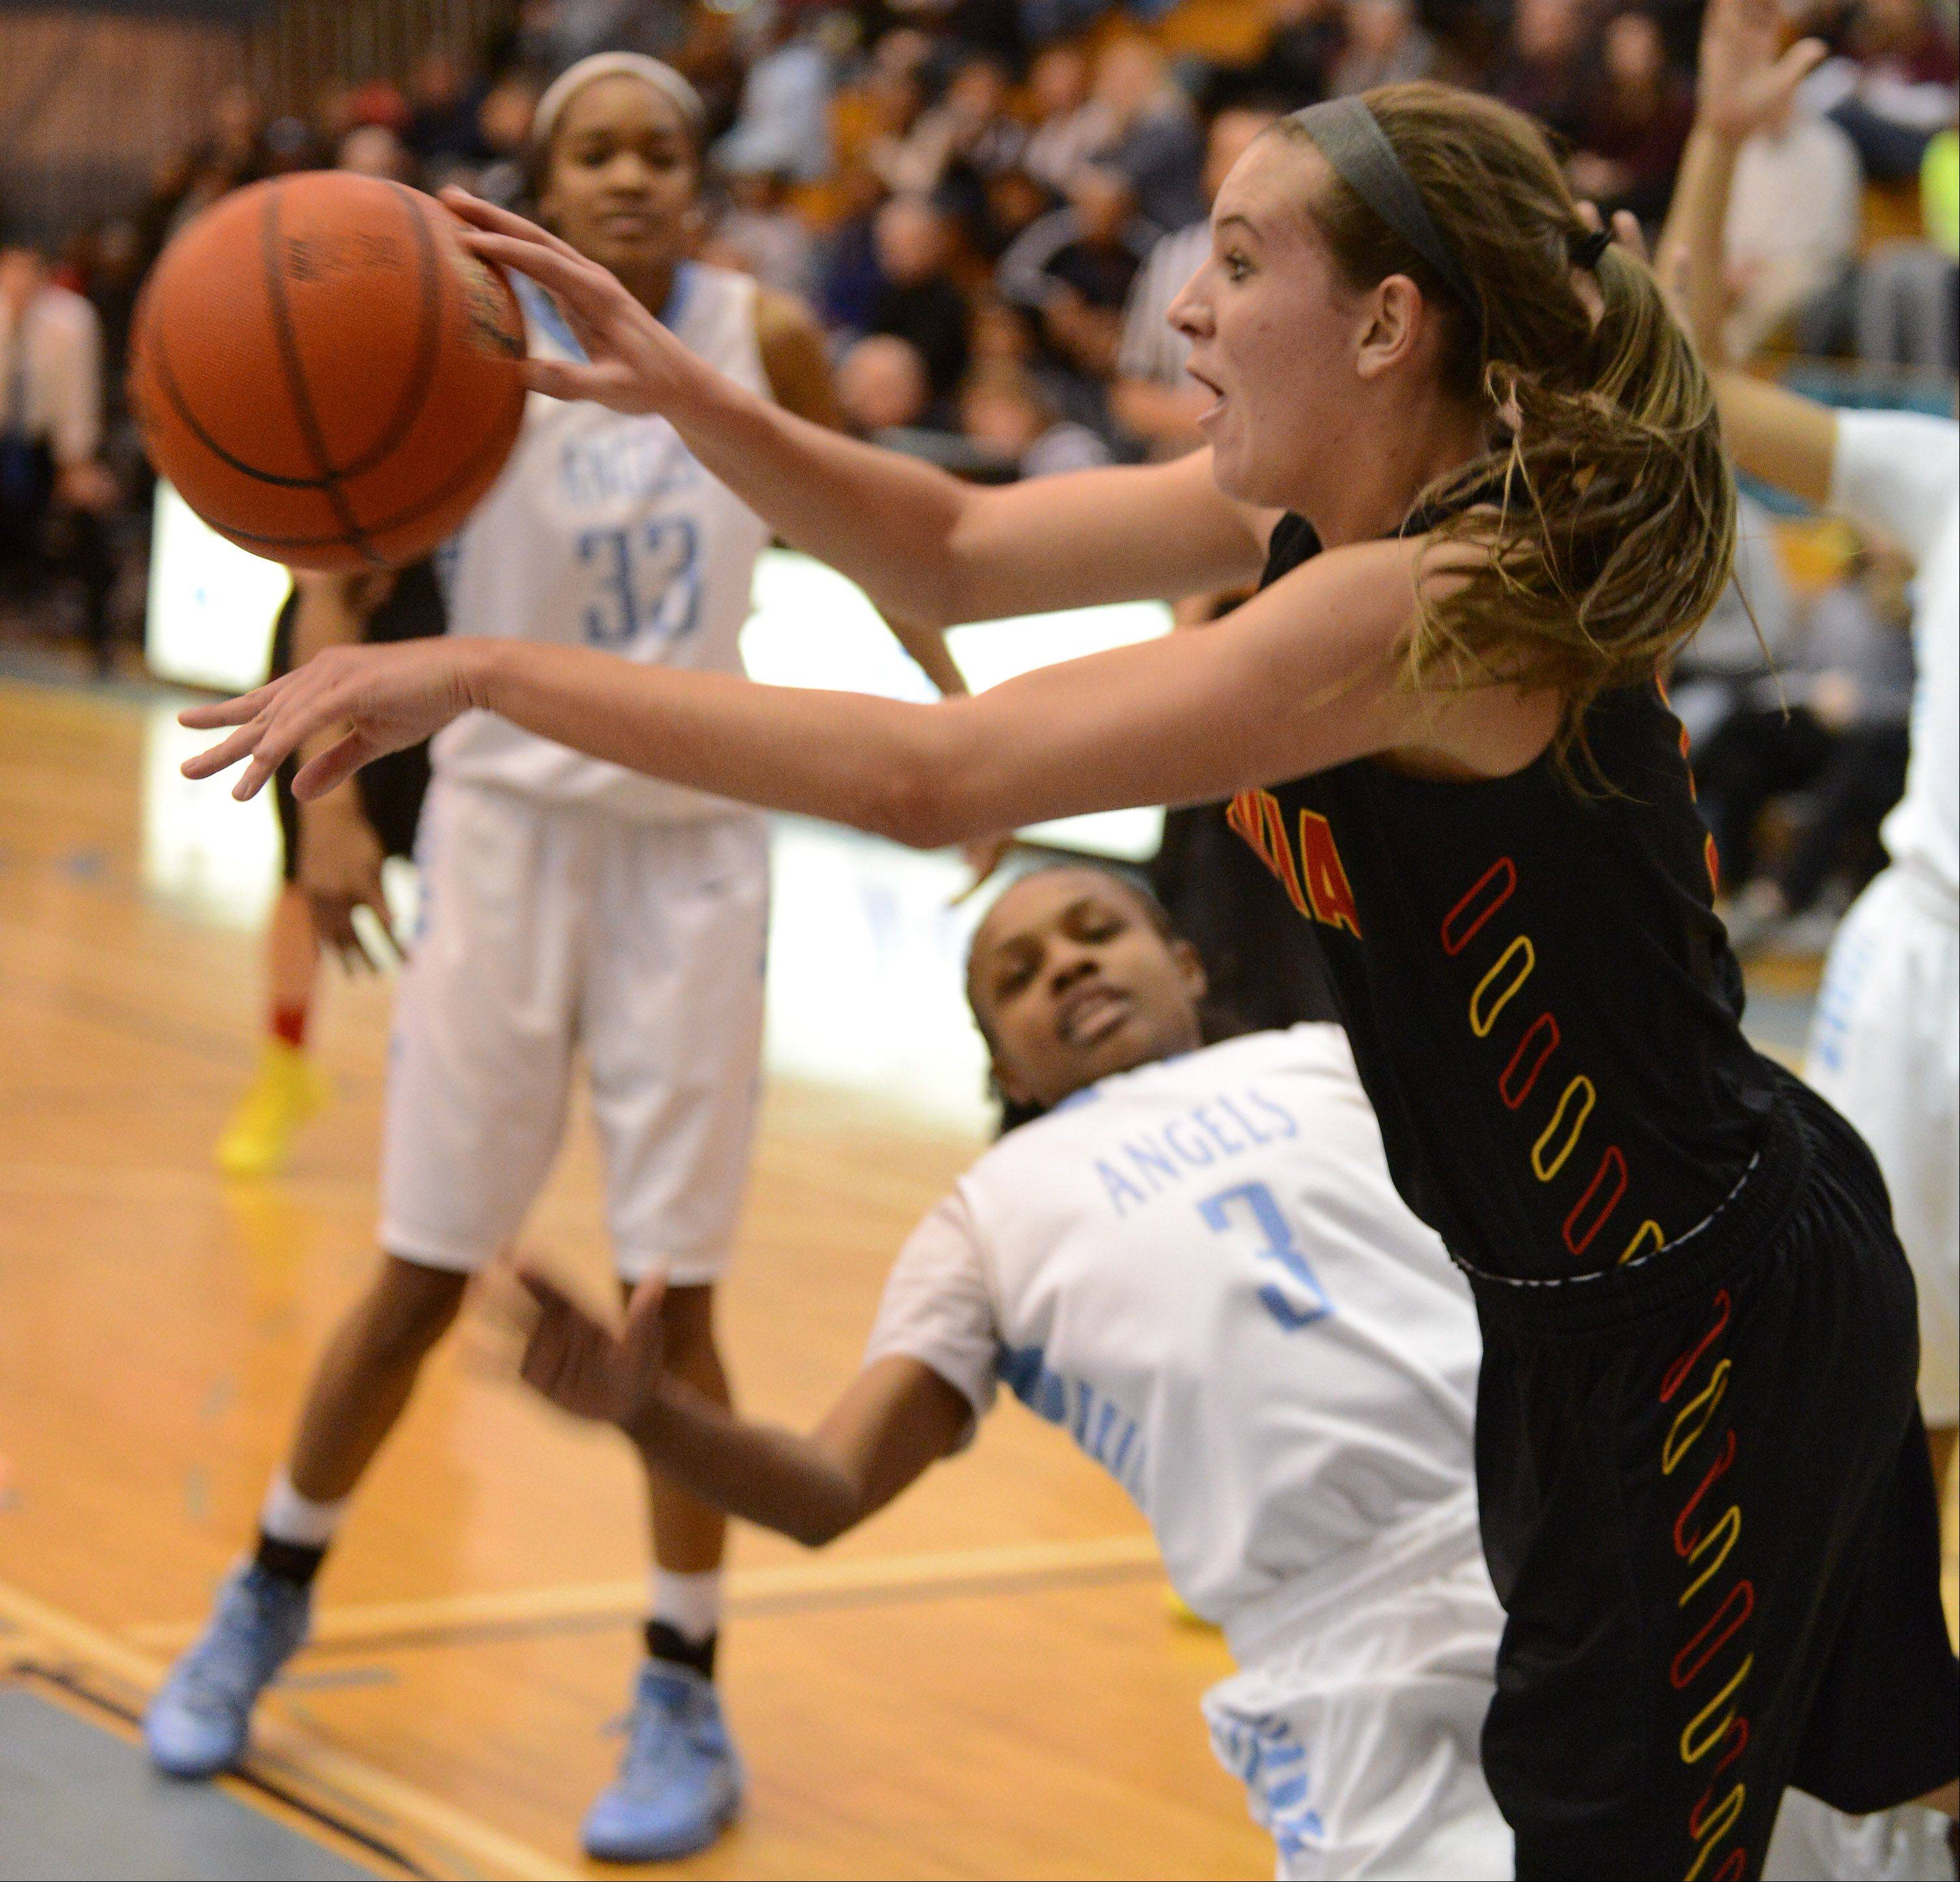 Batavia's Liza Fruendt dishes off after driving along the baseline against Joliet Catholic during Monday's game at the 24th annual McDonald's Shootout at Willowbrook High School in Villa Park.